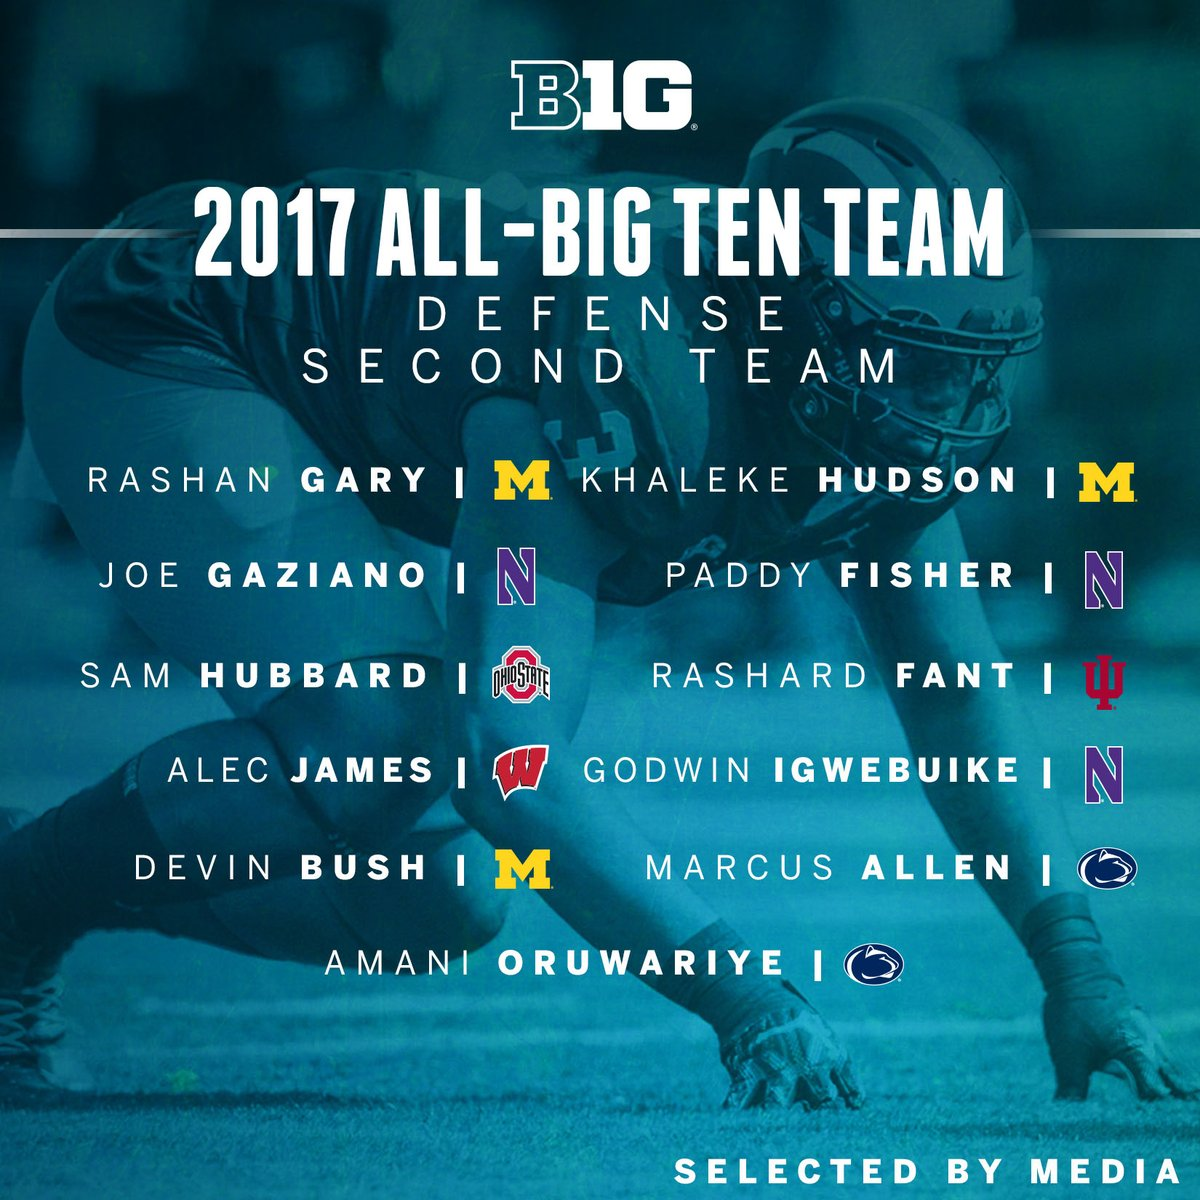 All-Big Ten Defense Second Team, as selected by Media